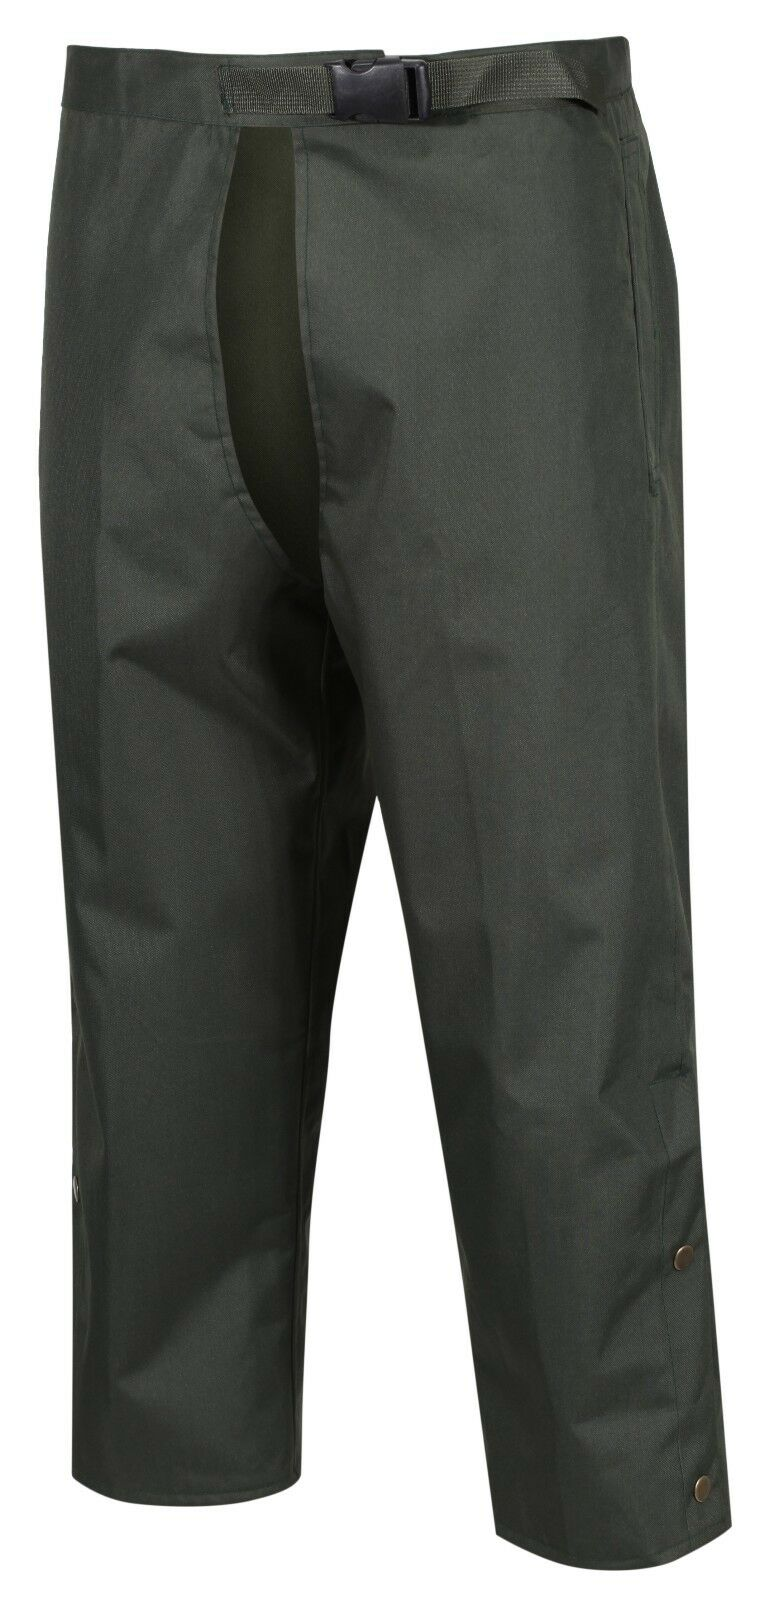 Treggins Ripstop Waterproof For Shooting Beating Hunting Over Trousers Lined New